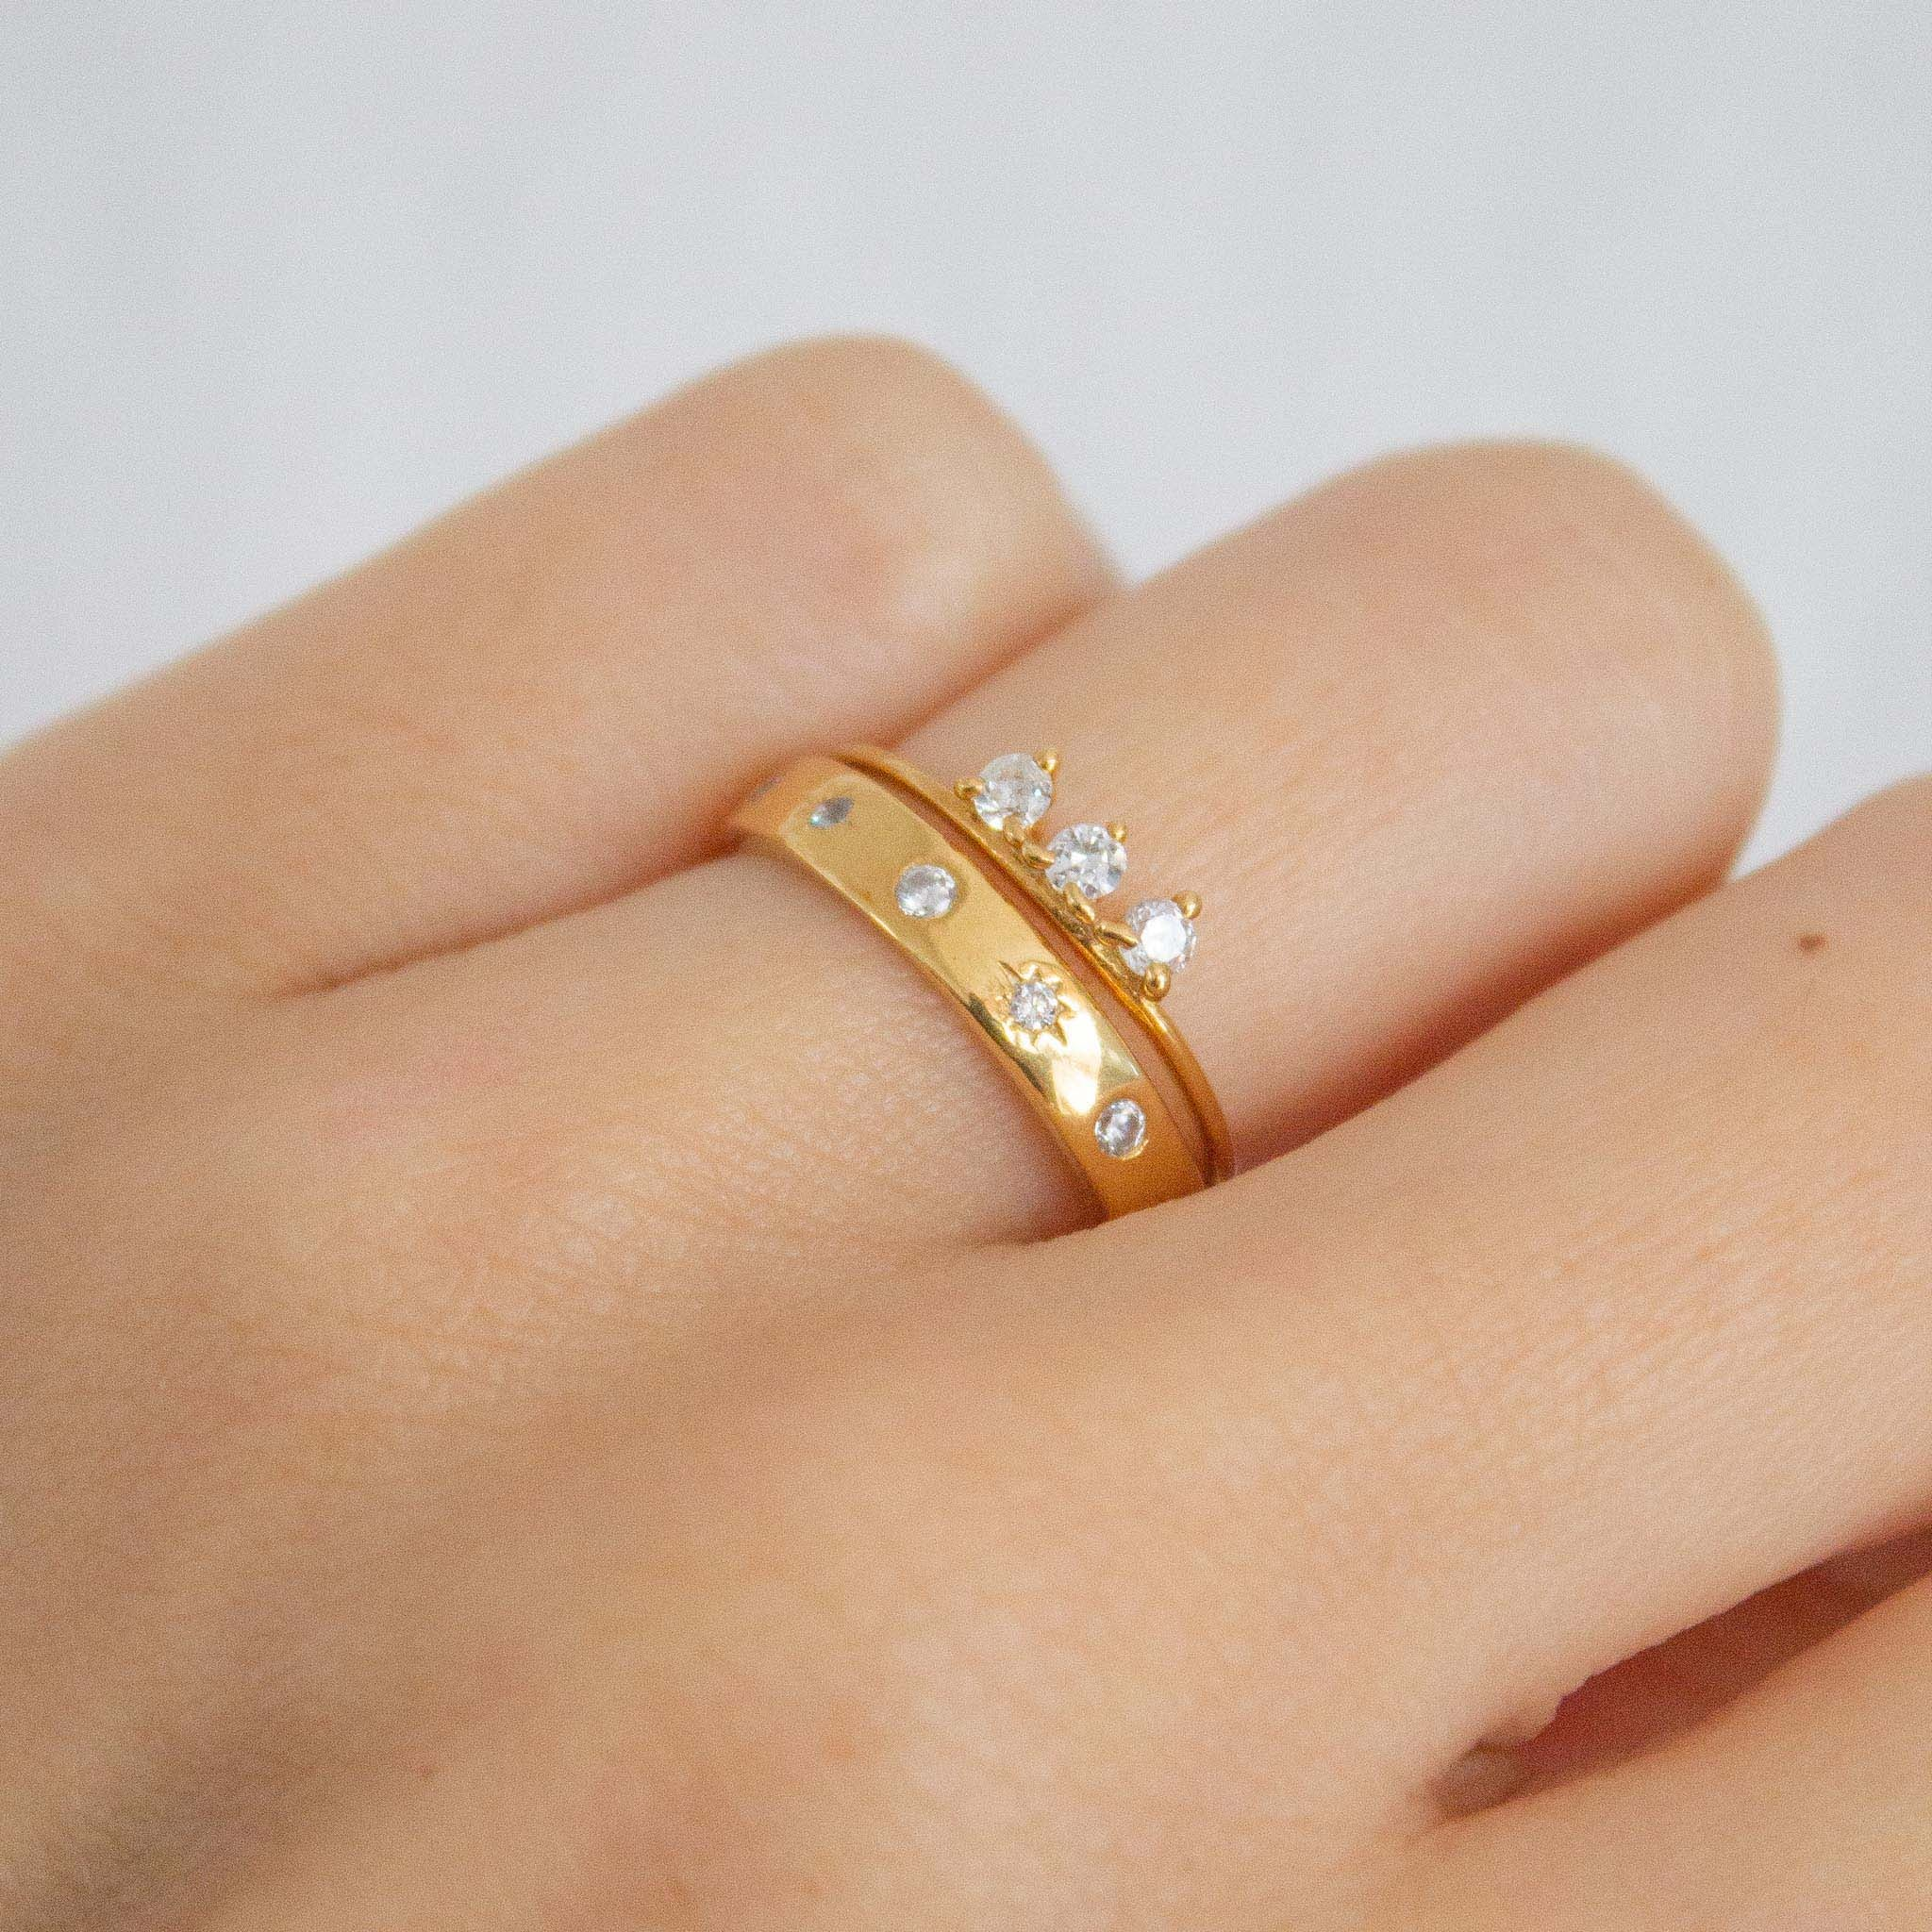 3 ways to stack your rings